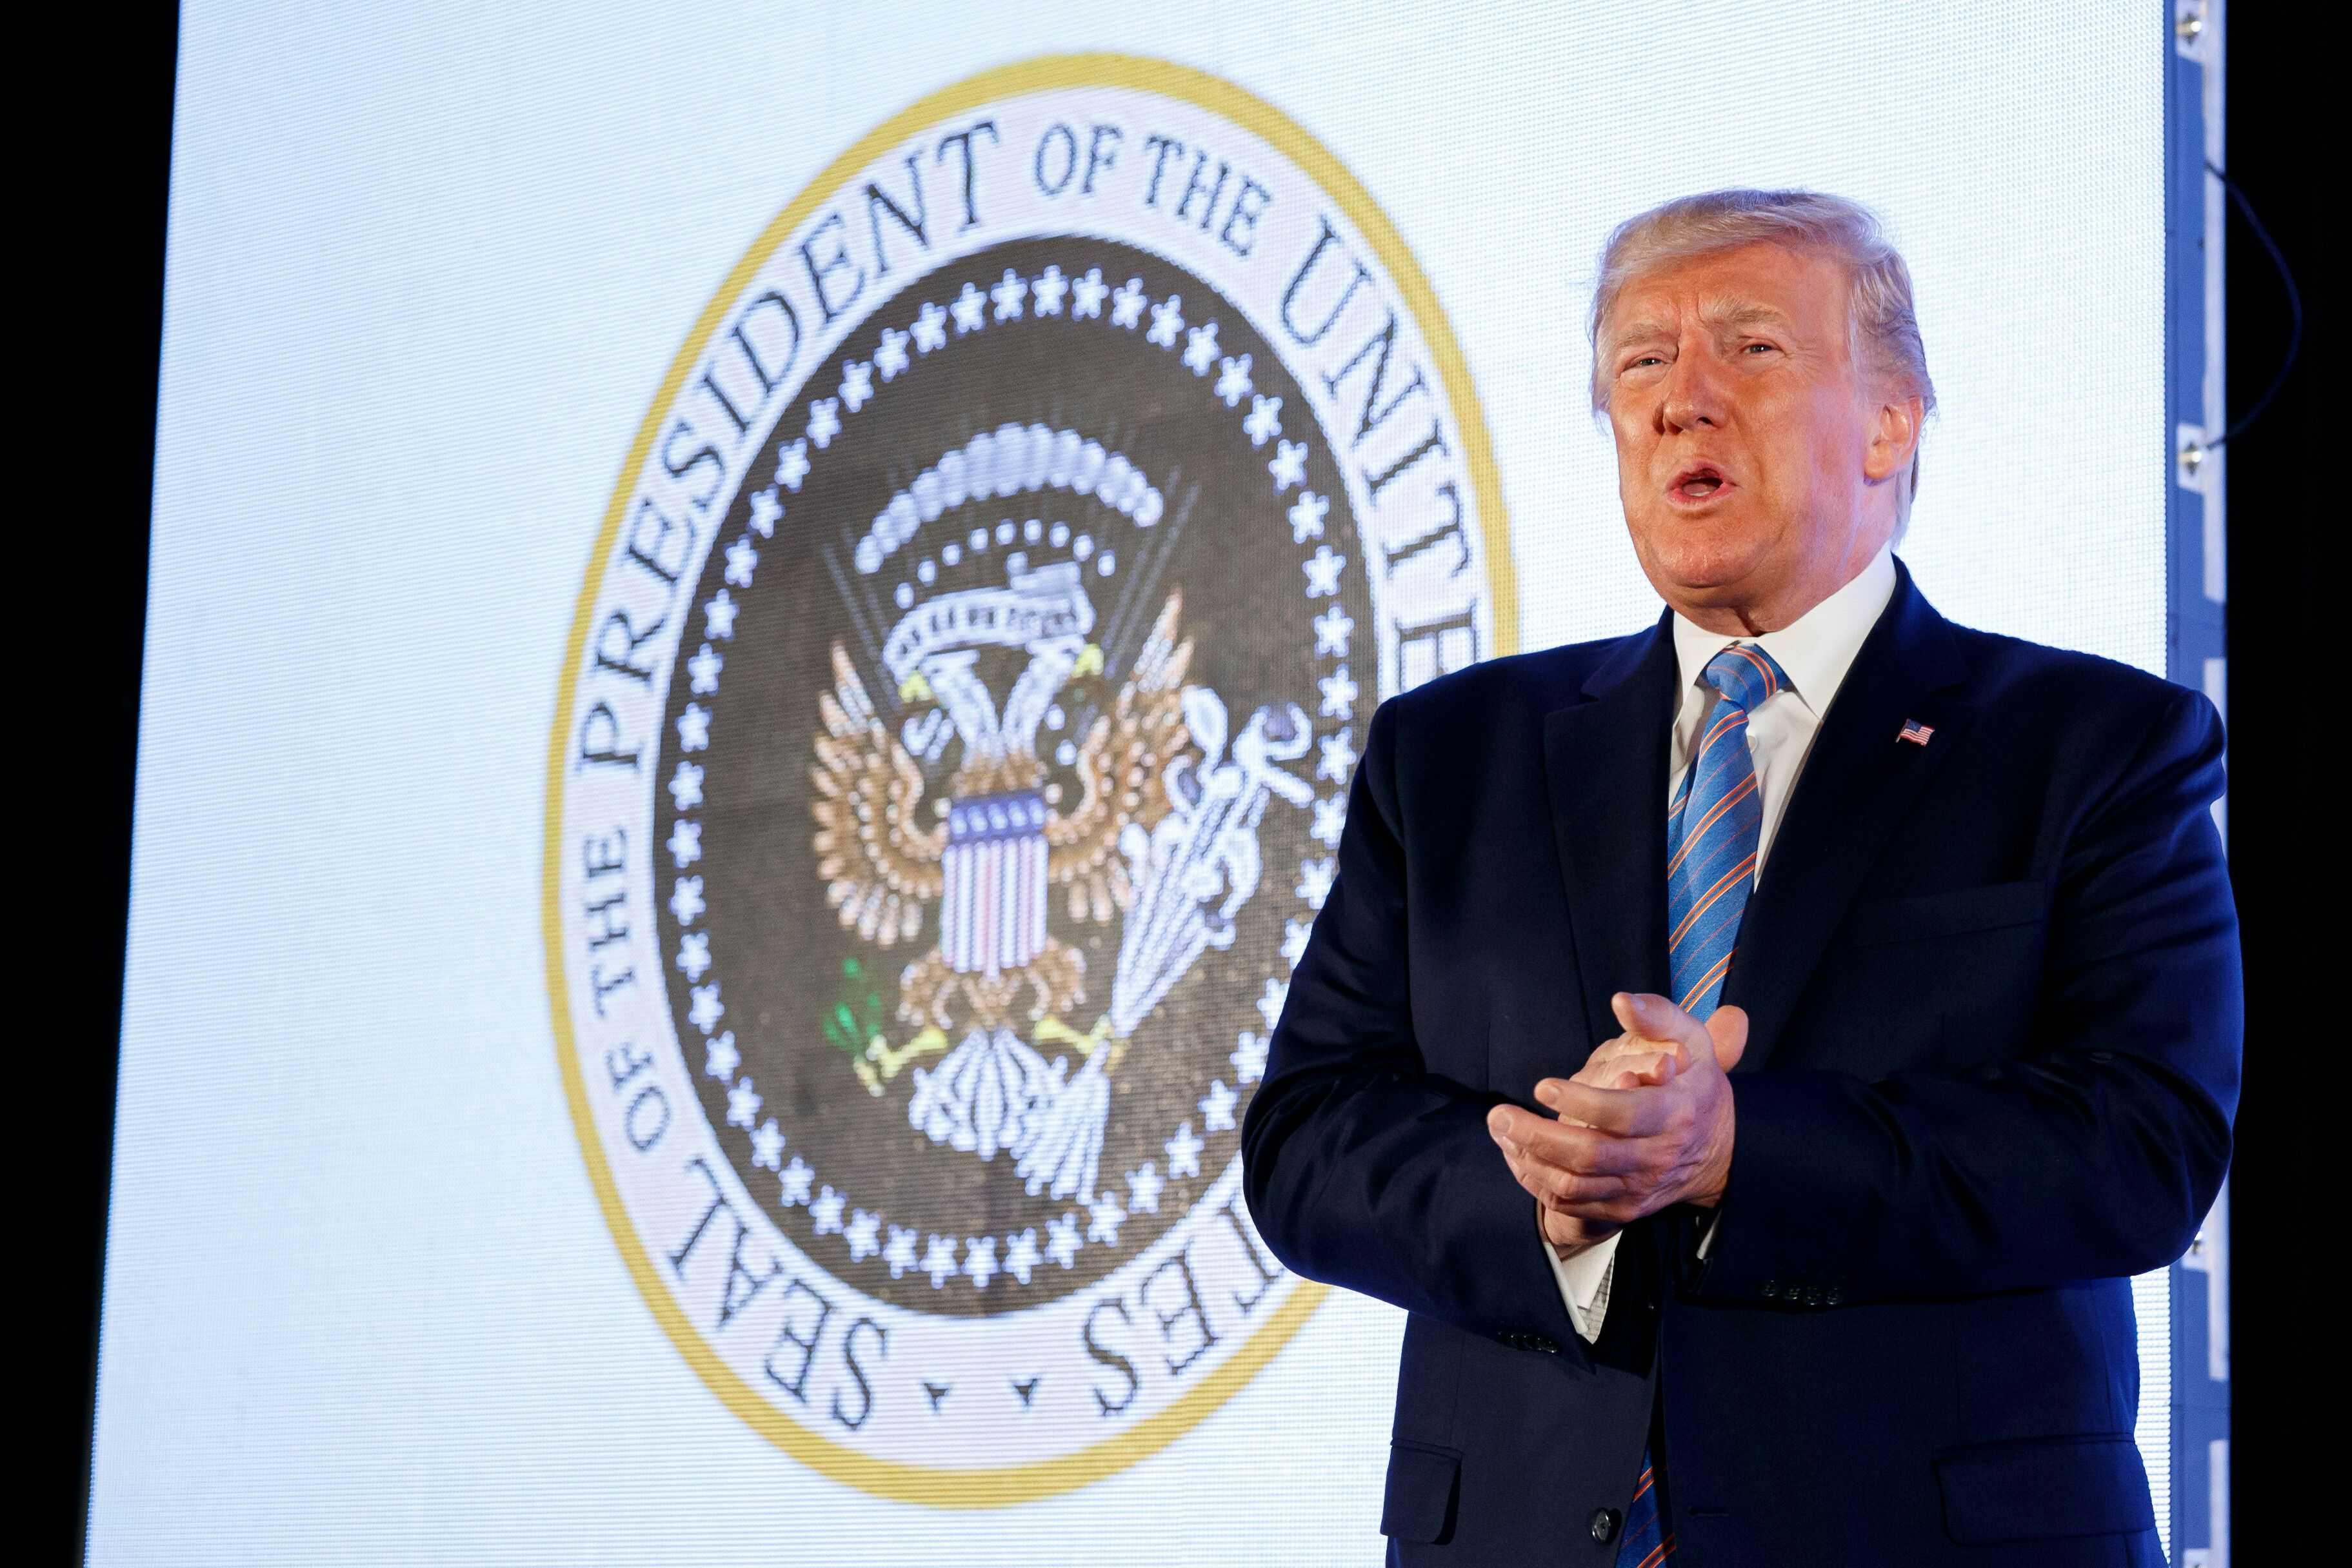 President Donald Trump speaks to a college Republican group as the doctored presidential seal showing Russian symbols and gol